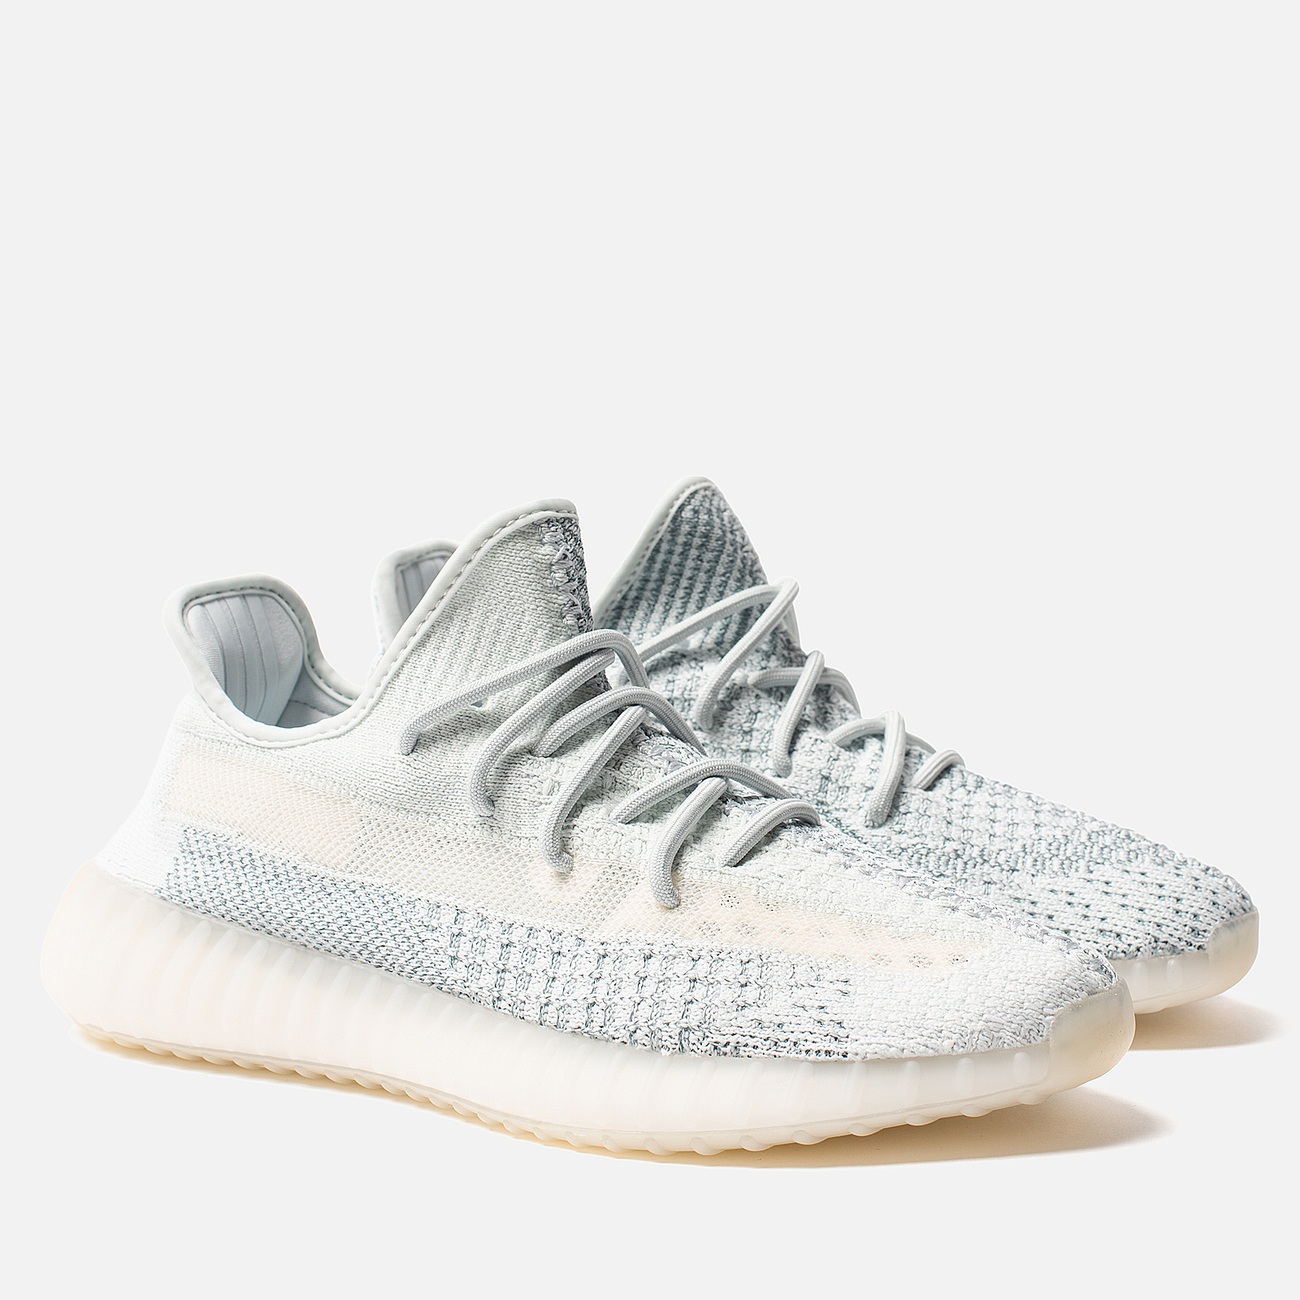 Кроссовки adidas Originals YEEZY Boost 350 V2 Reflective Cloud White